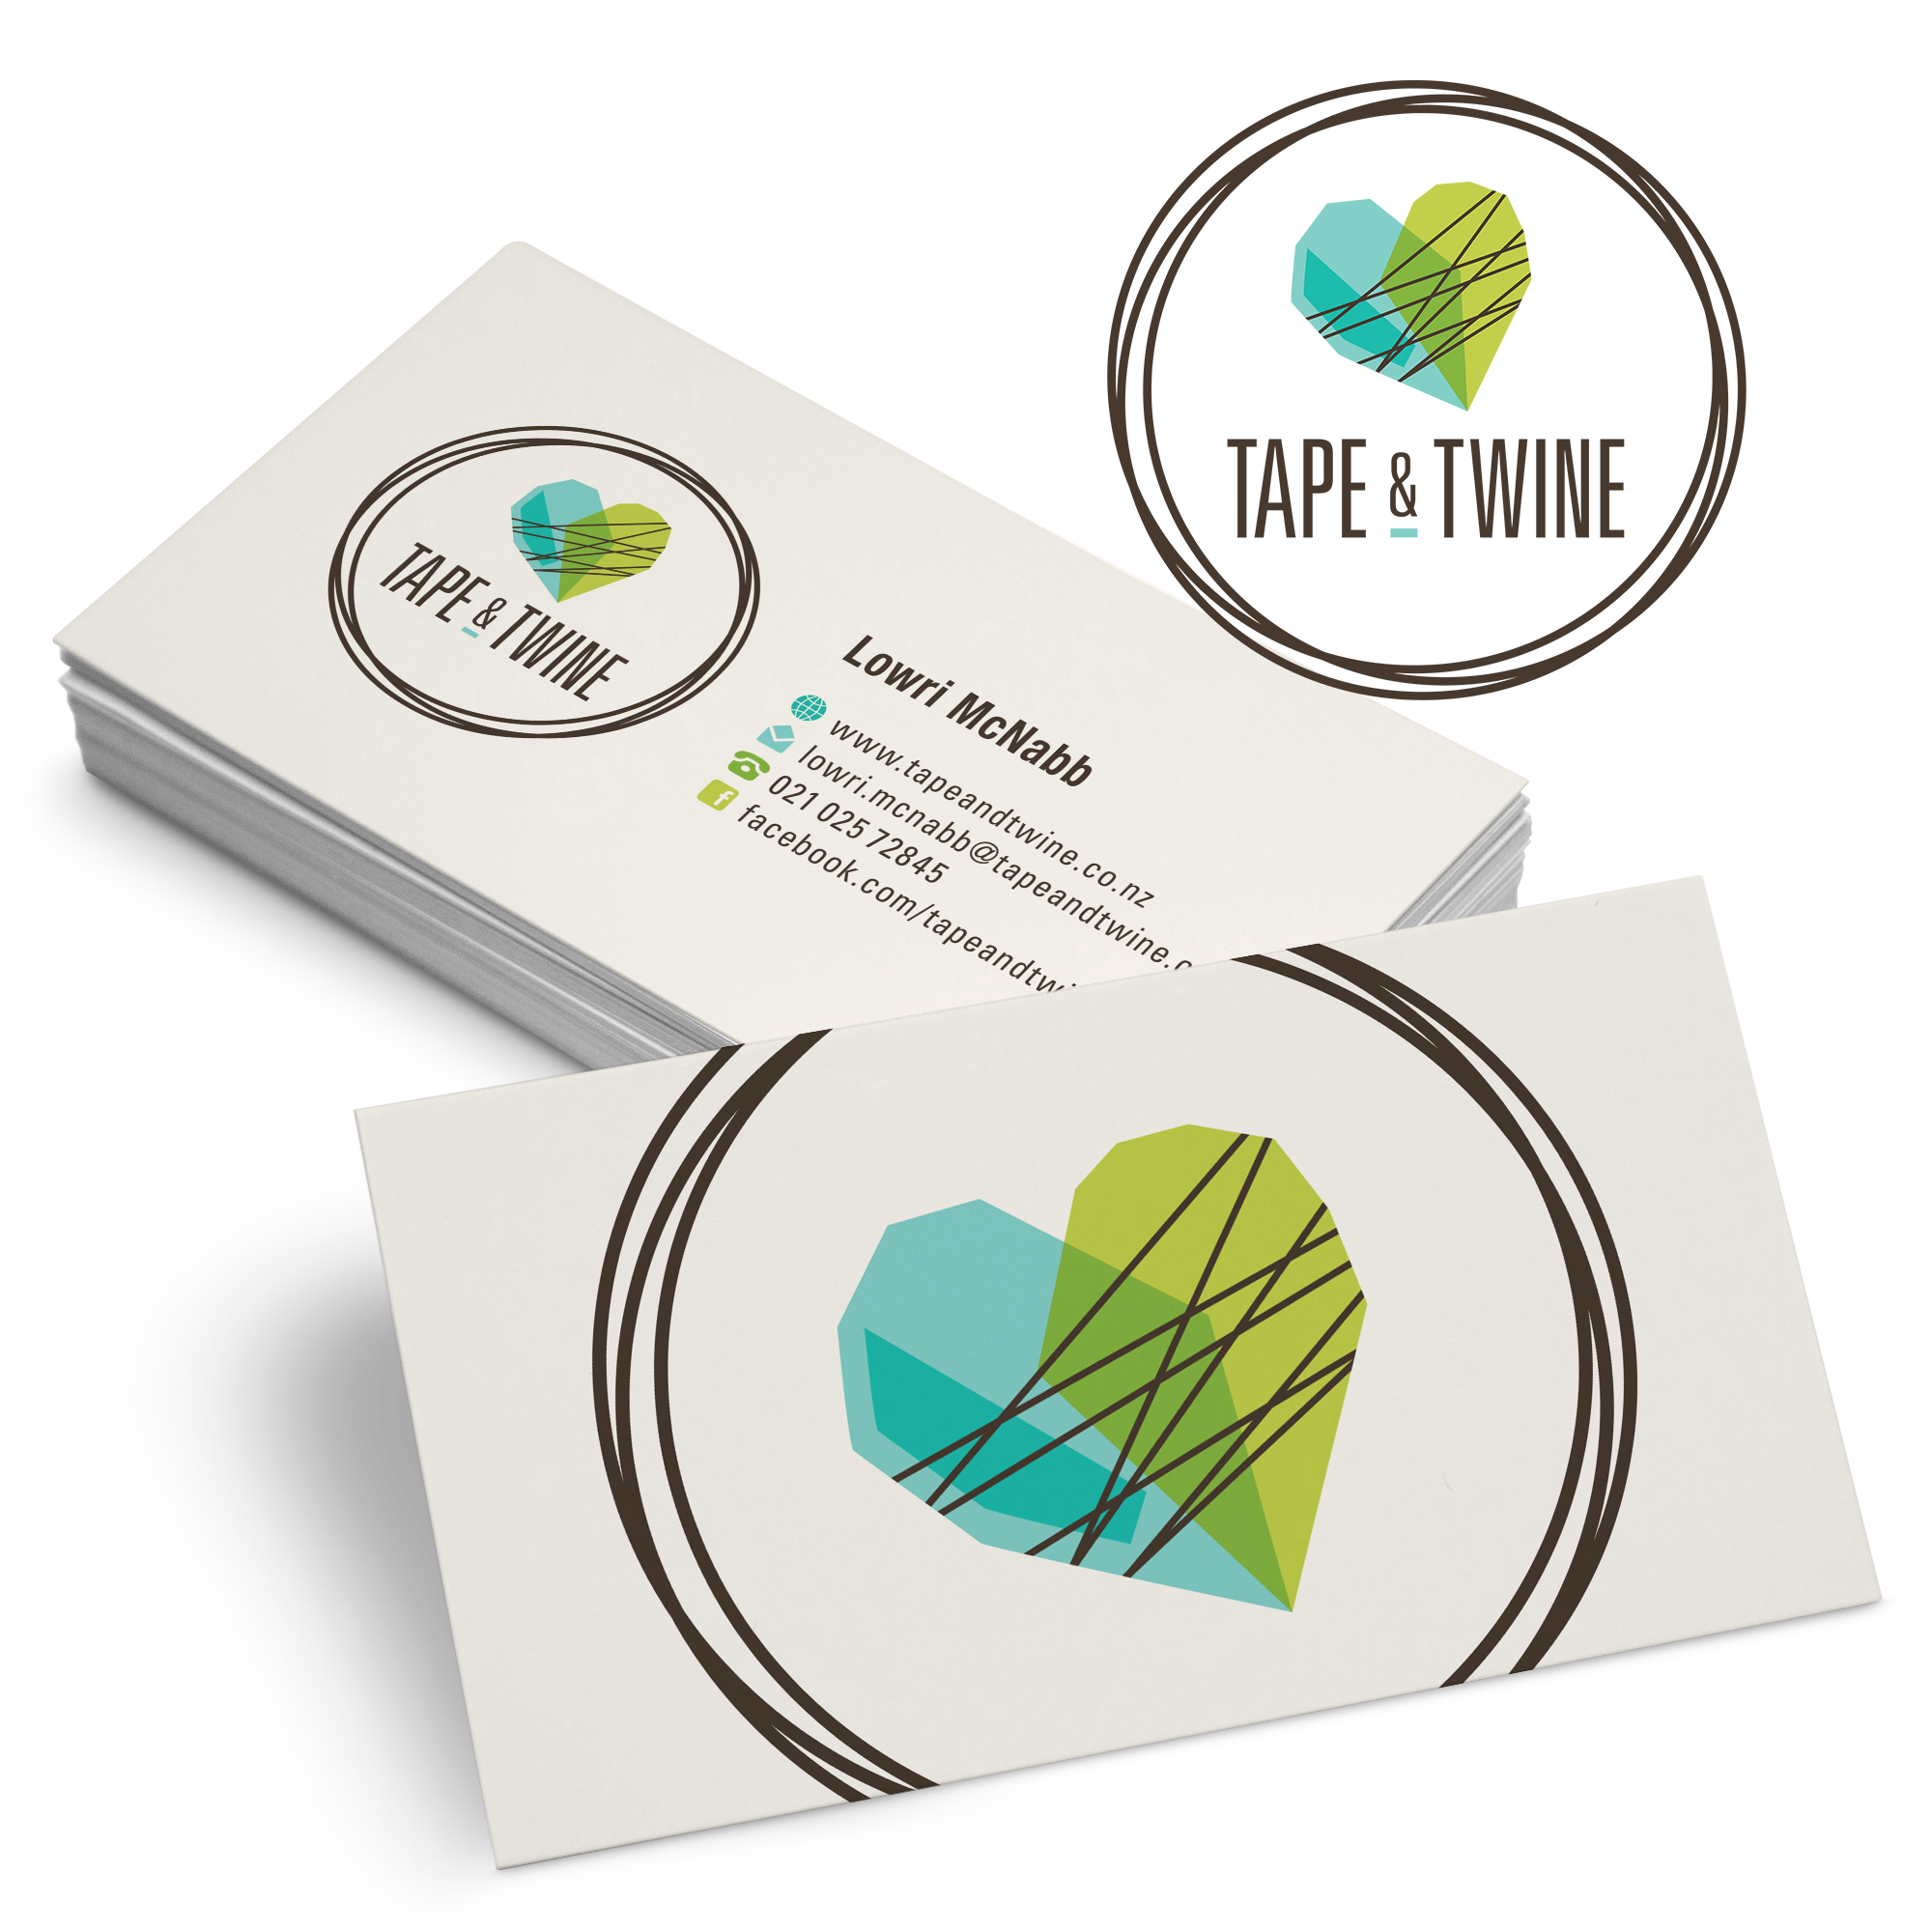 pecasのlogo-business-card-design